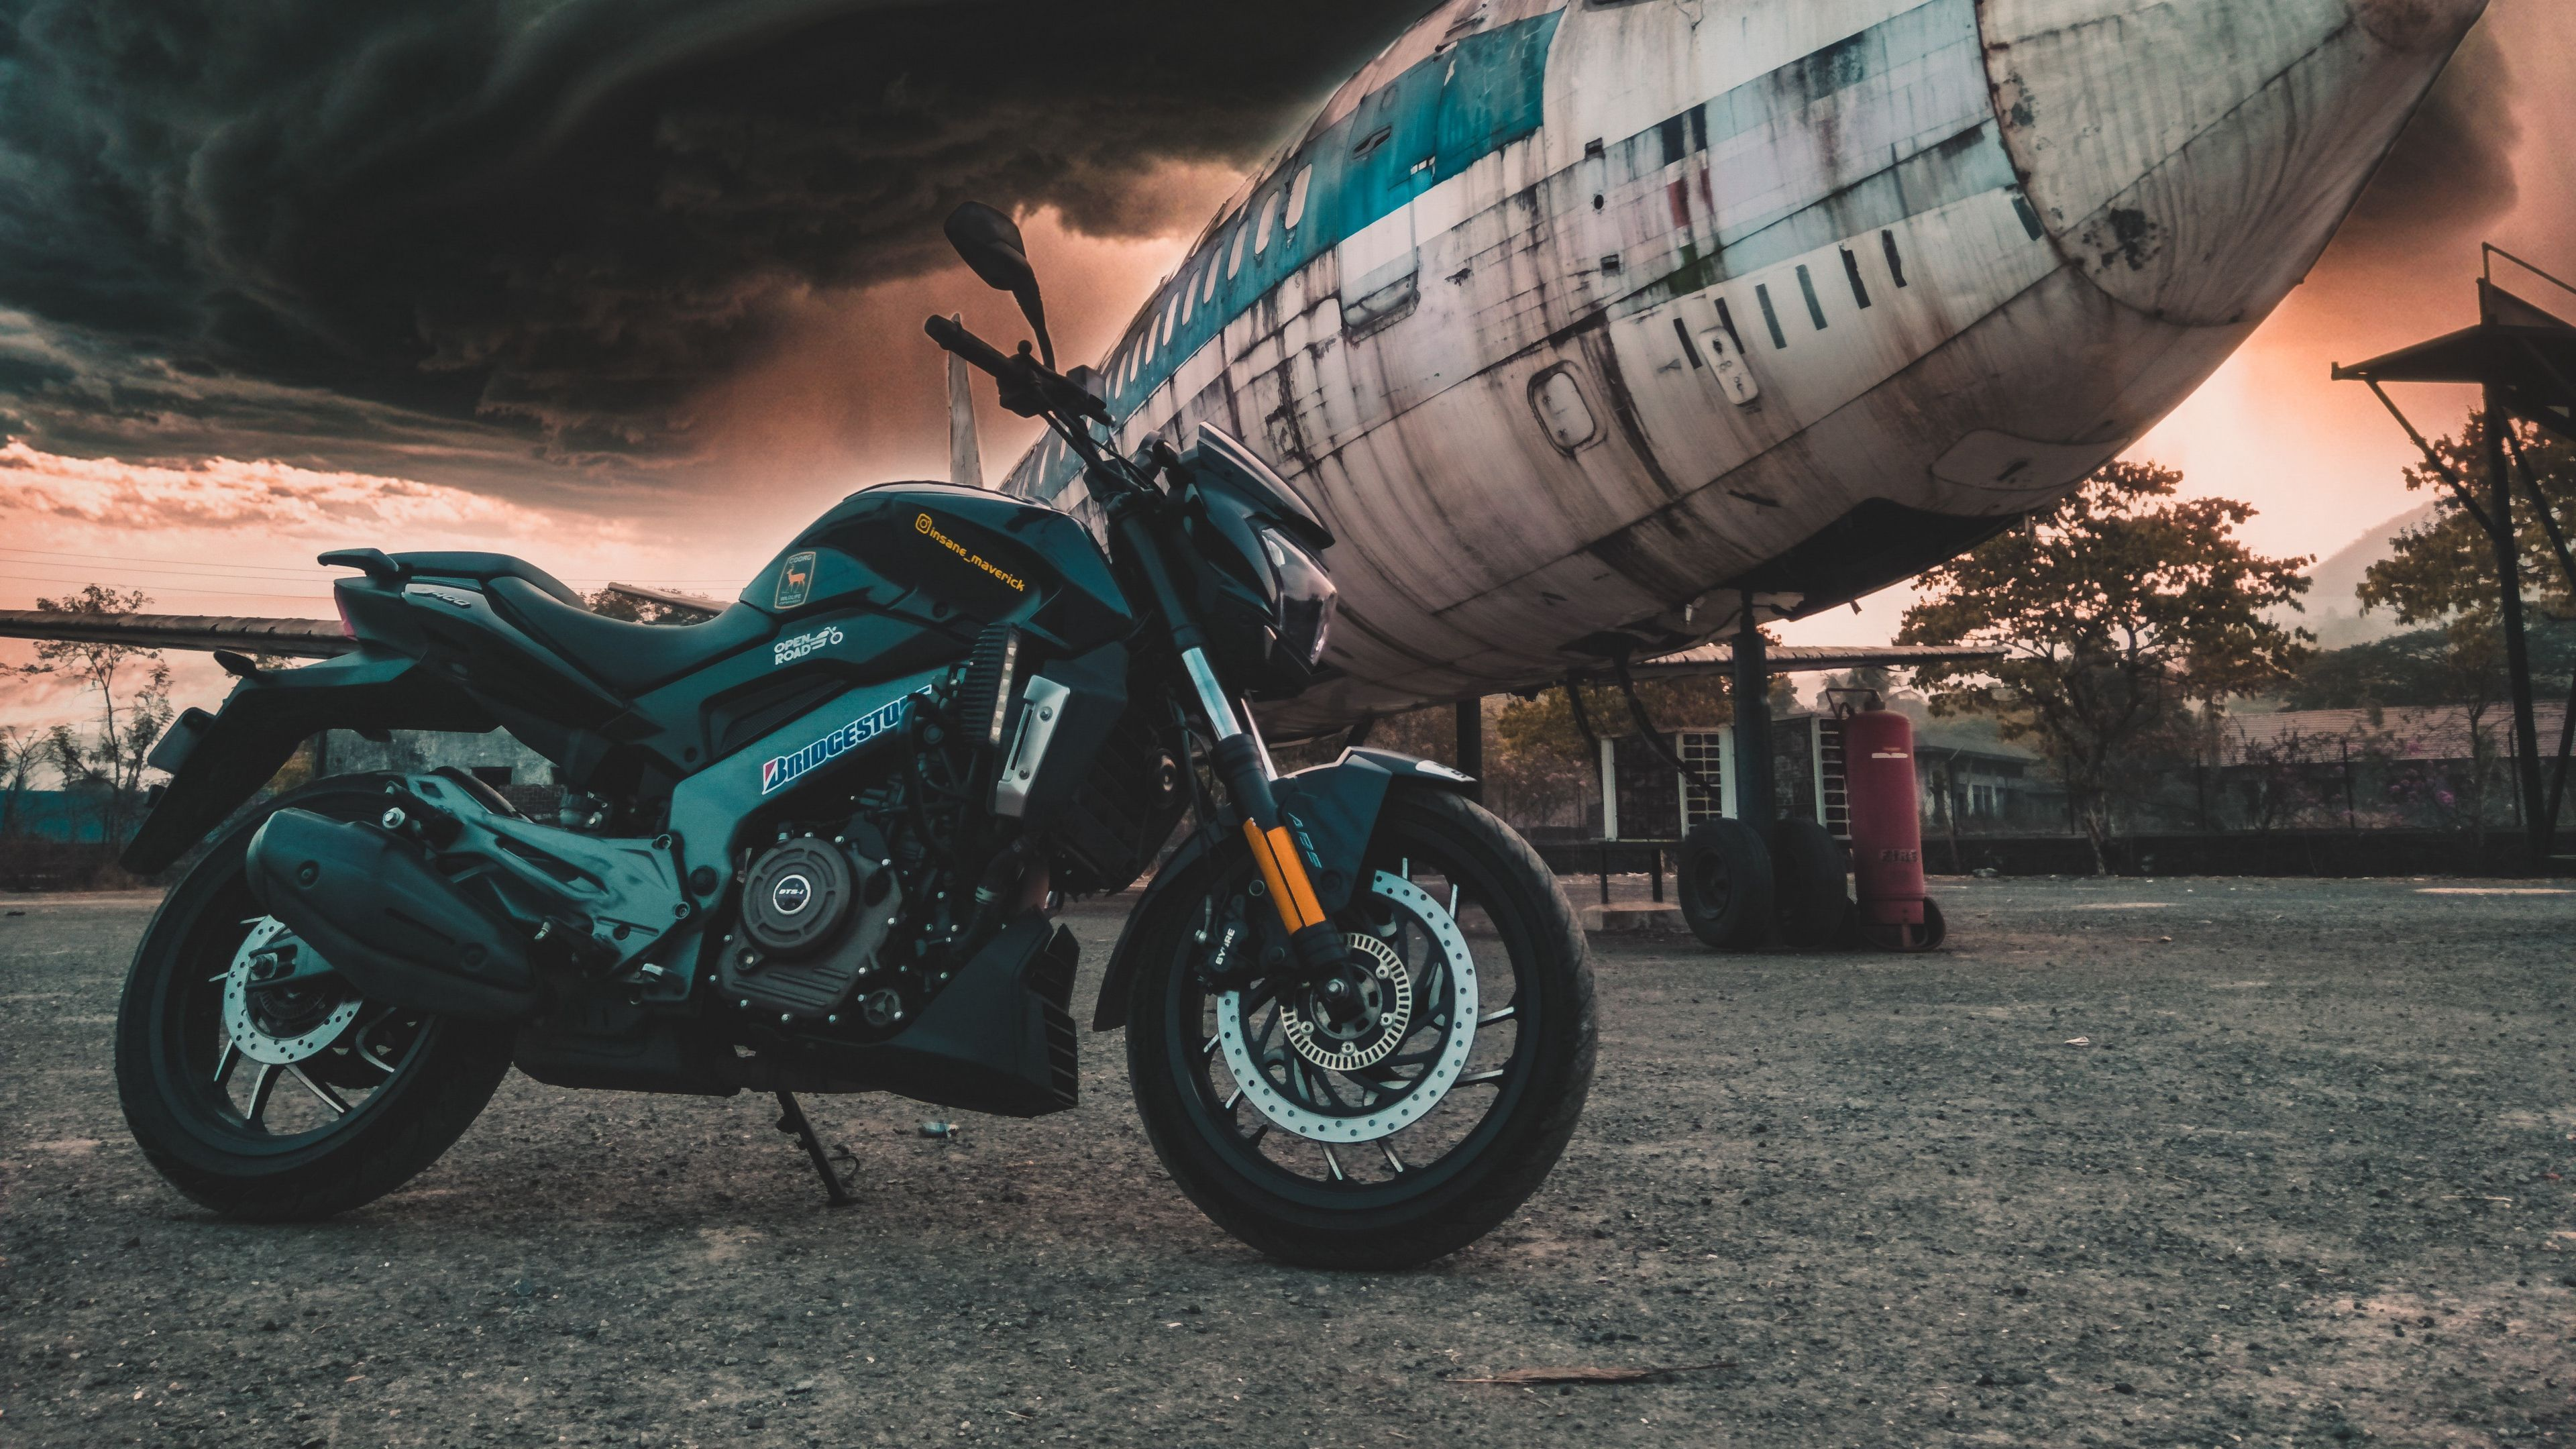 Motorcycle Airplane Side View Clouds Overcast 4k 4k Hd Wallpapers Motorcycle Clouds Hd Wallpaper